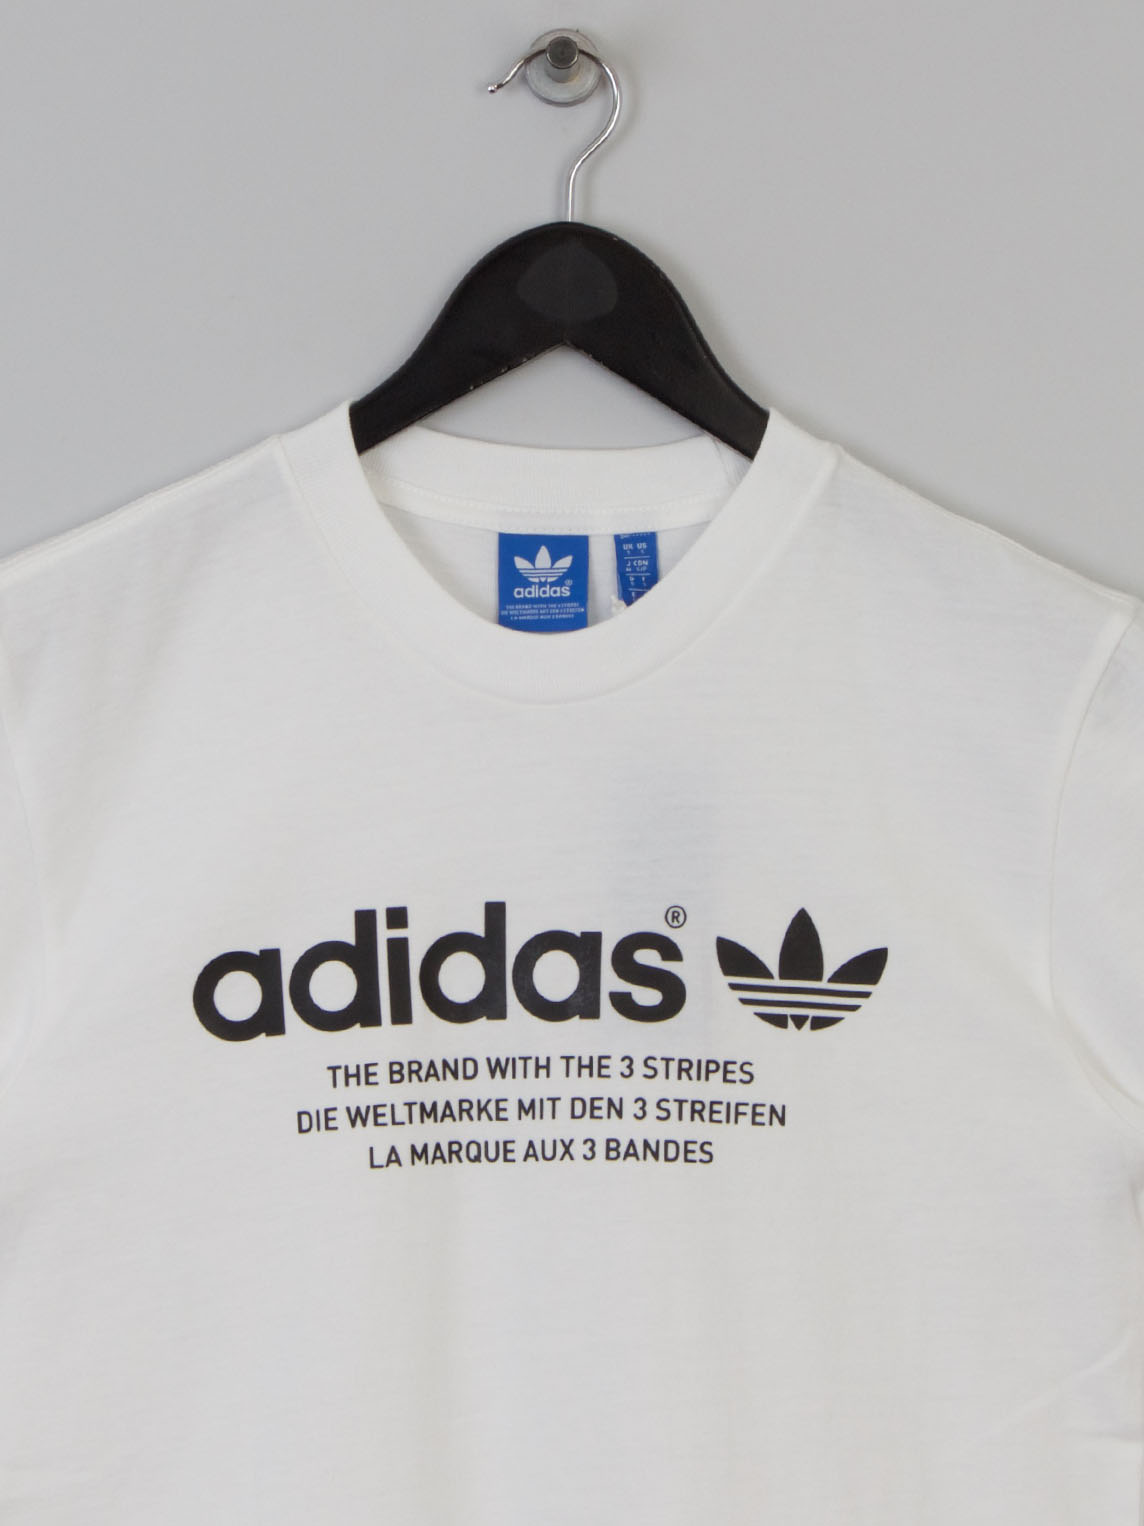 is adidas a german brand